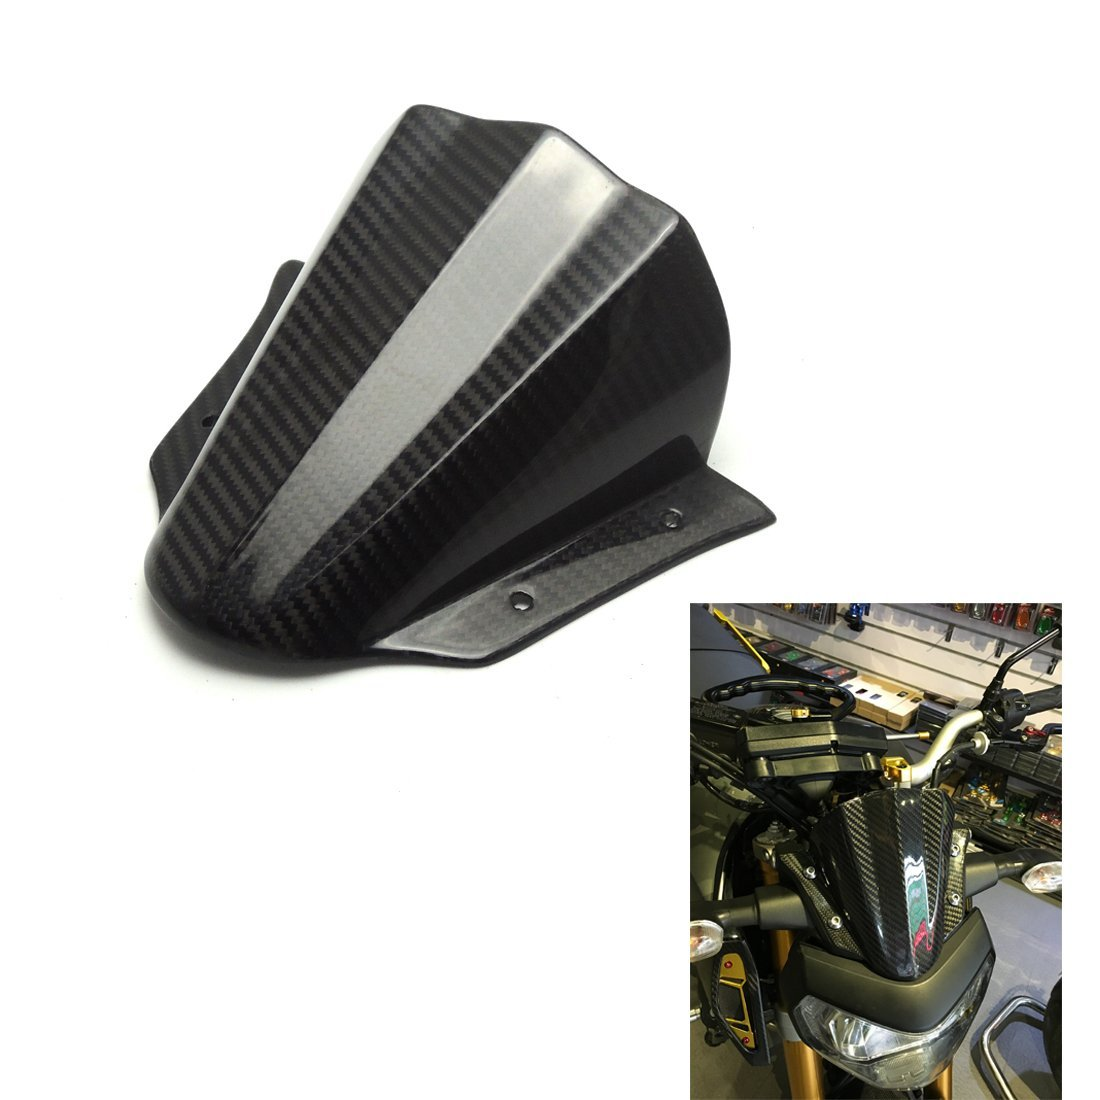 FZ 09 Windshield WindScreen Carbon Fiber for Yamaha FZ 09 2014 2015 2016 2017